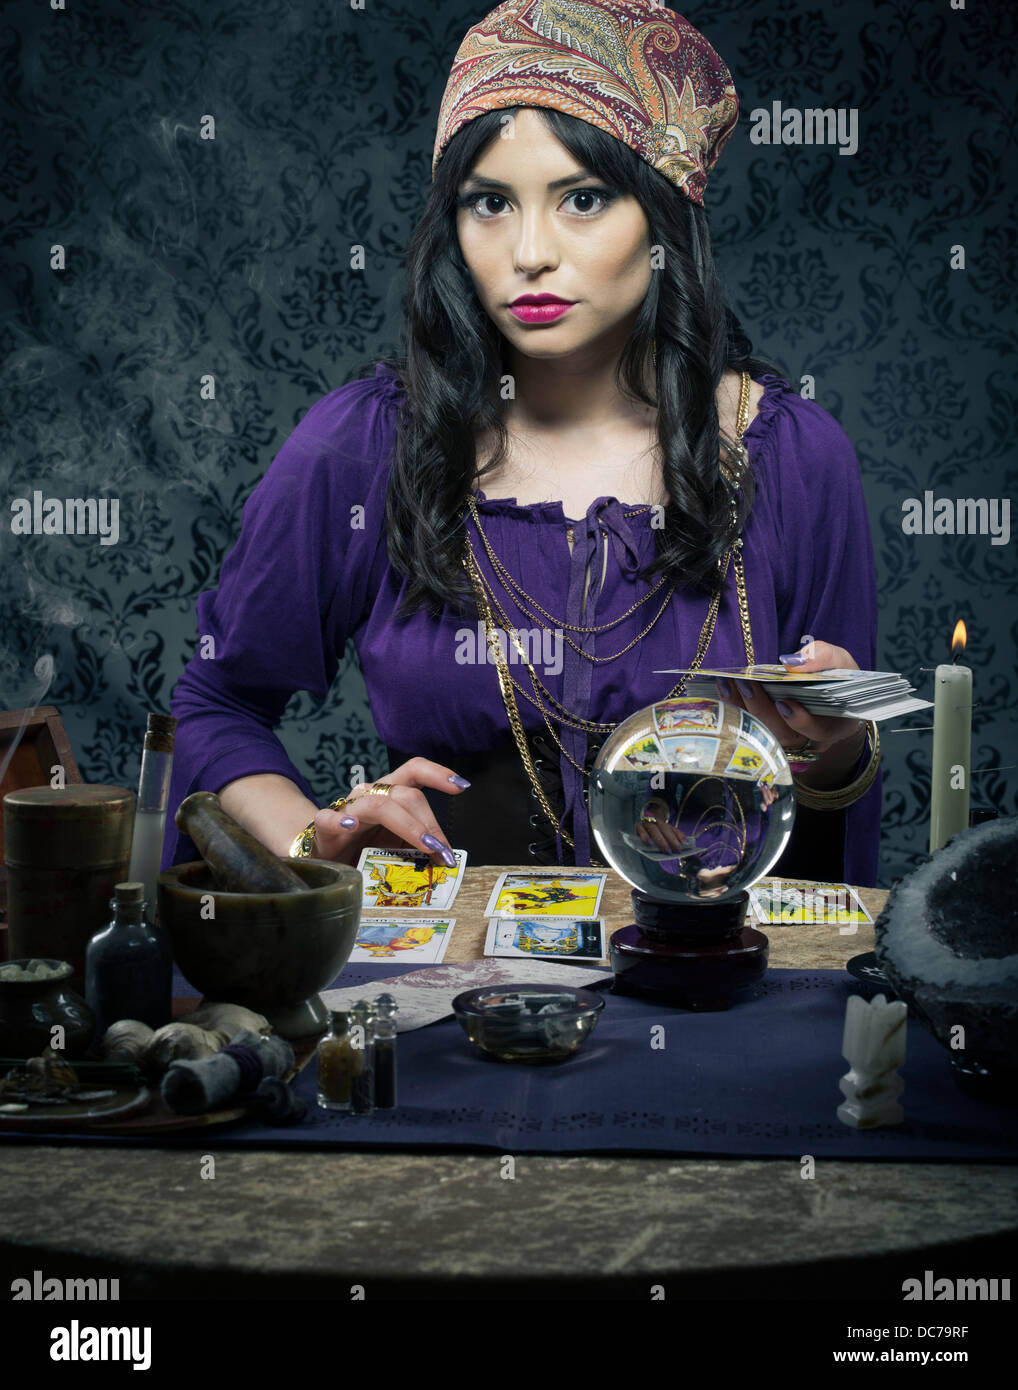 Fortune teller / mystic  with crystal ball and tarrot cards - Stock Image